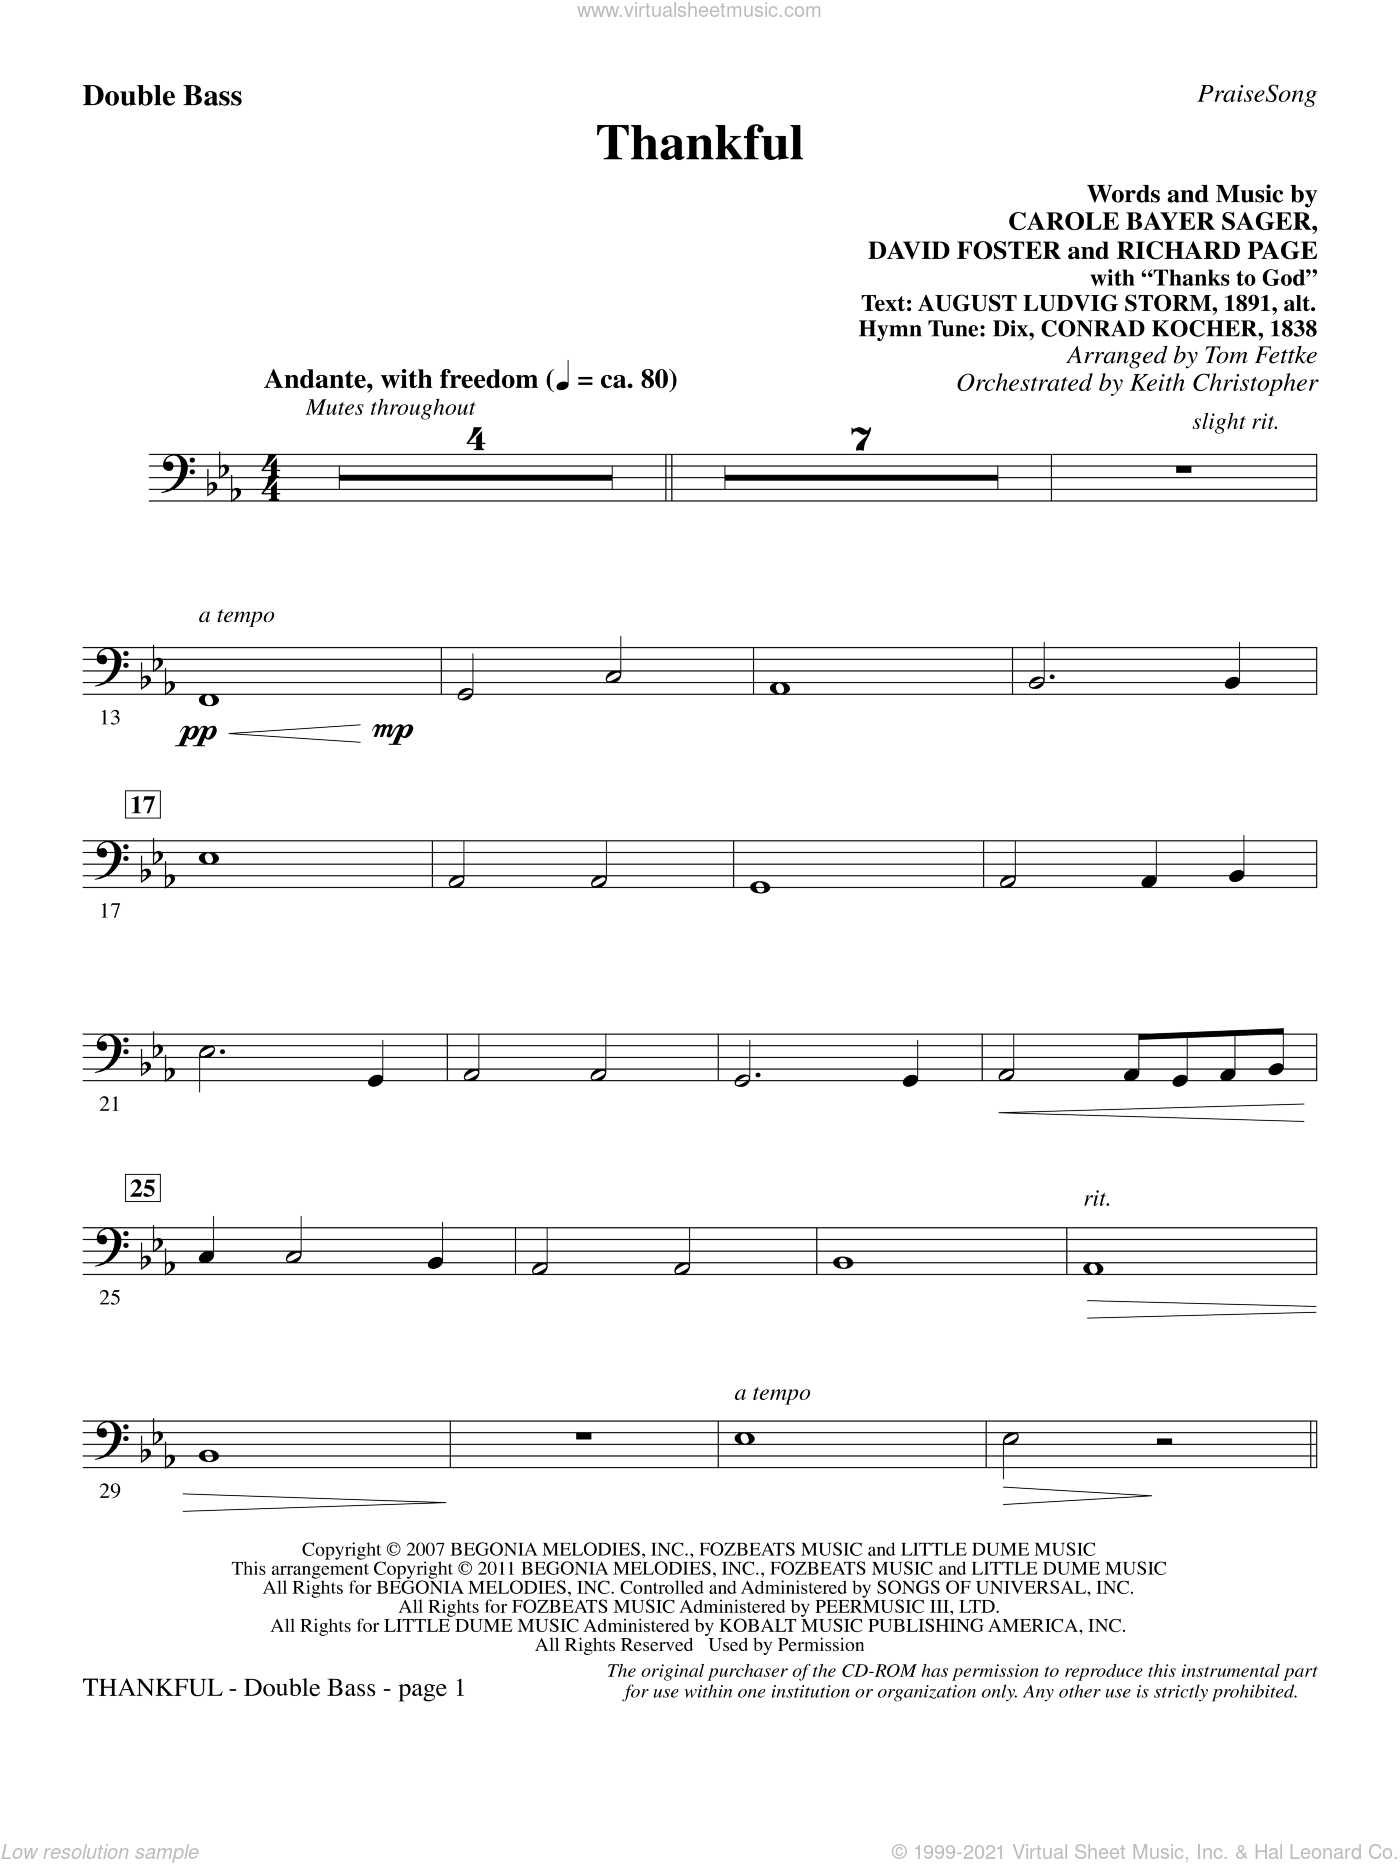 Thankful sheet music for orchestra/band (double bass) by Carole Bayer Sager